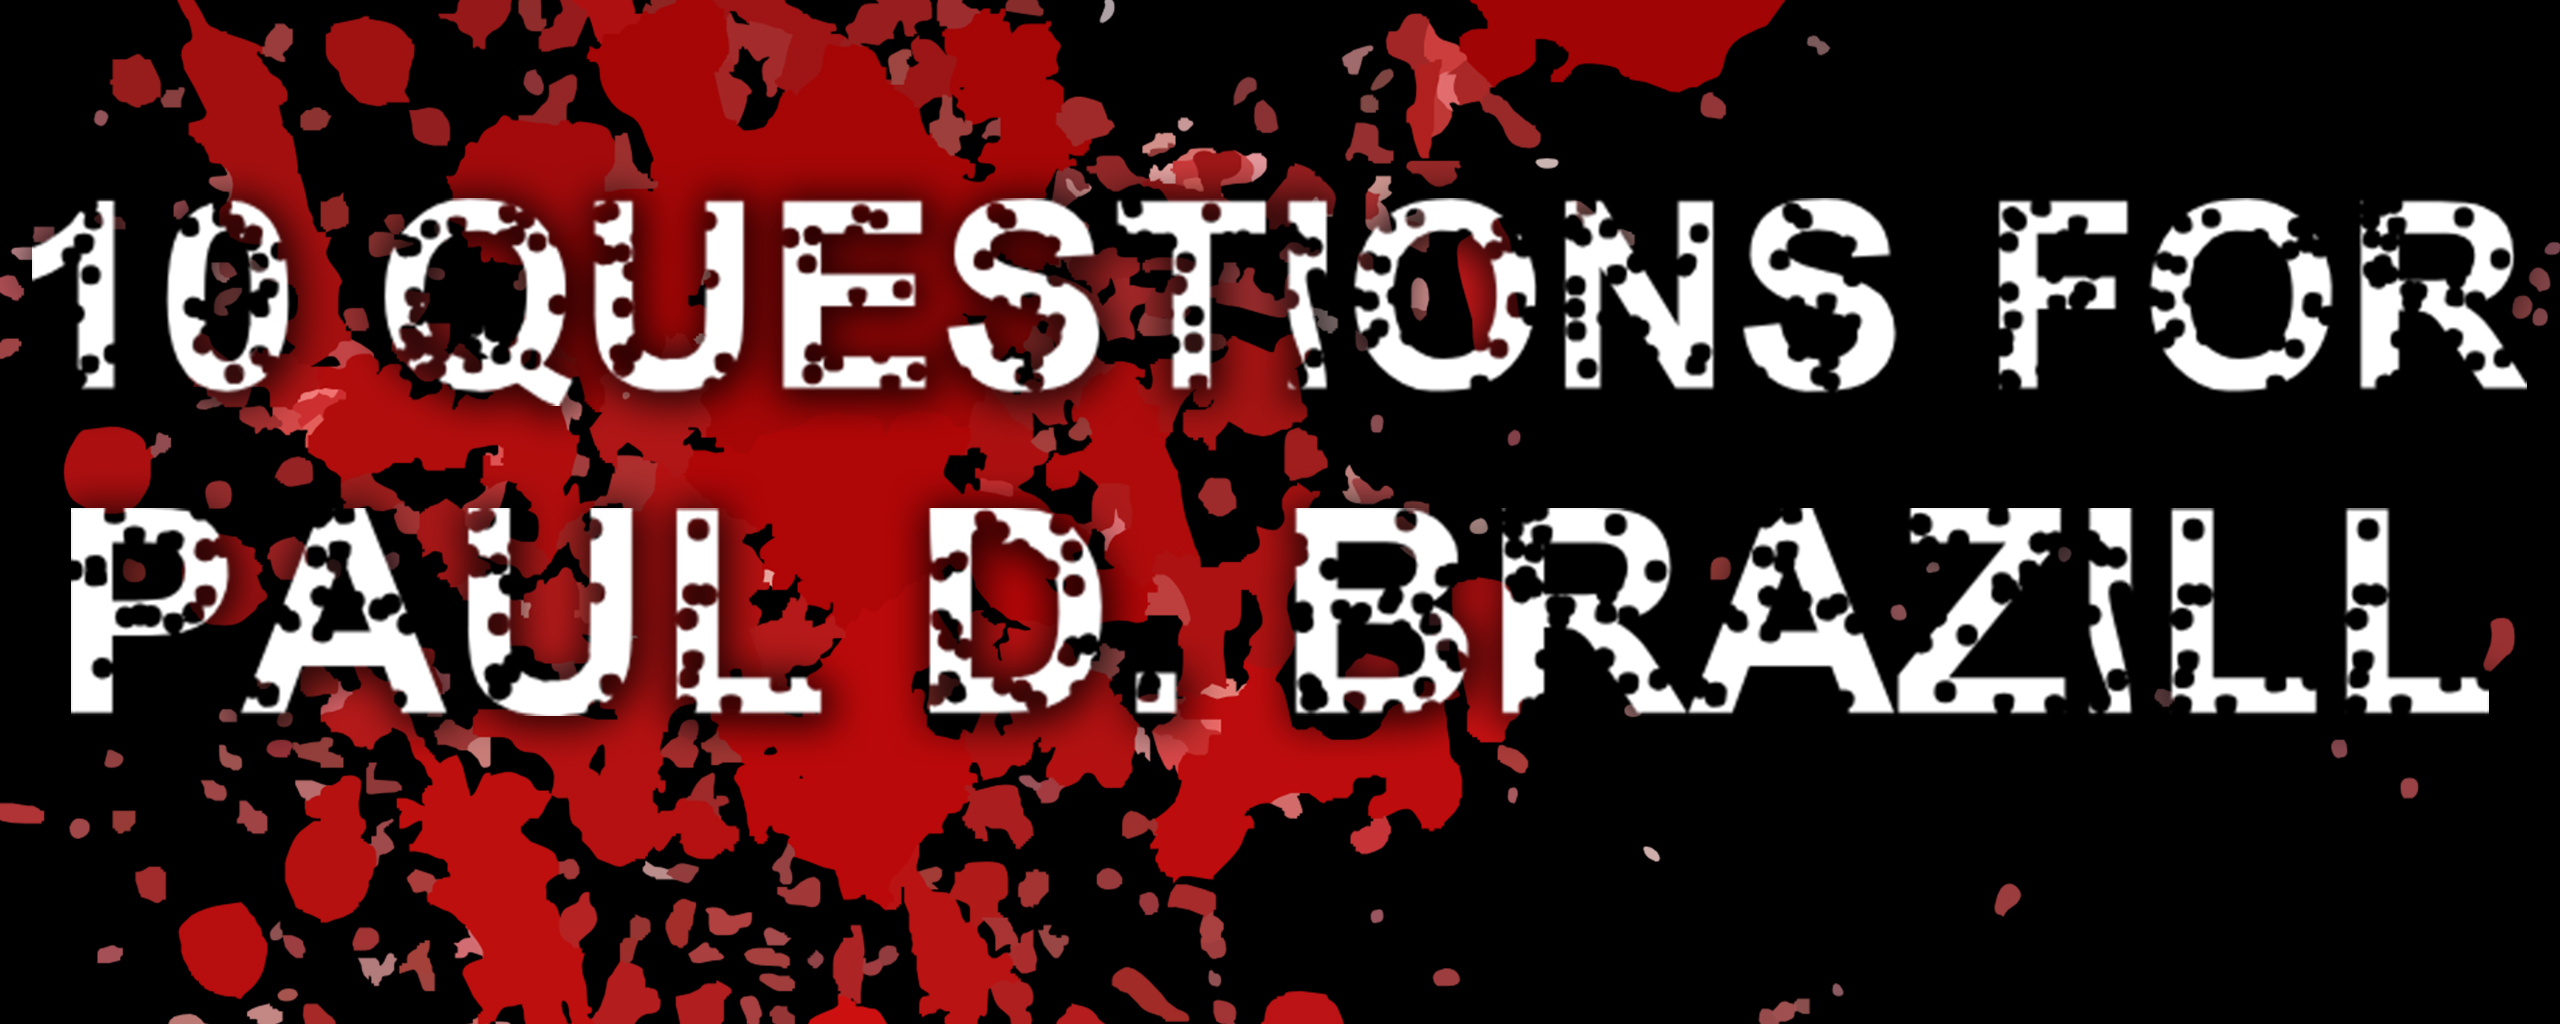 10 Questions for Paul D Brazill